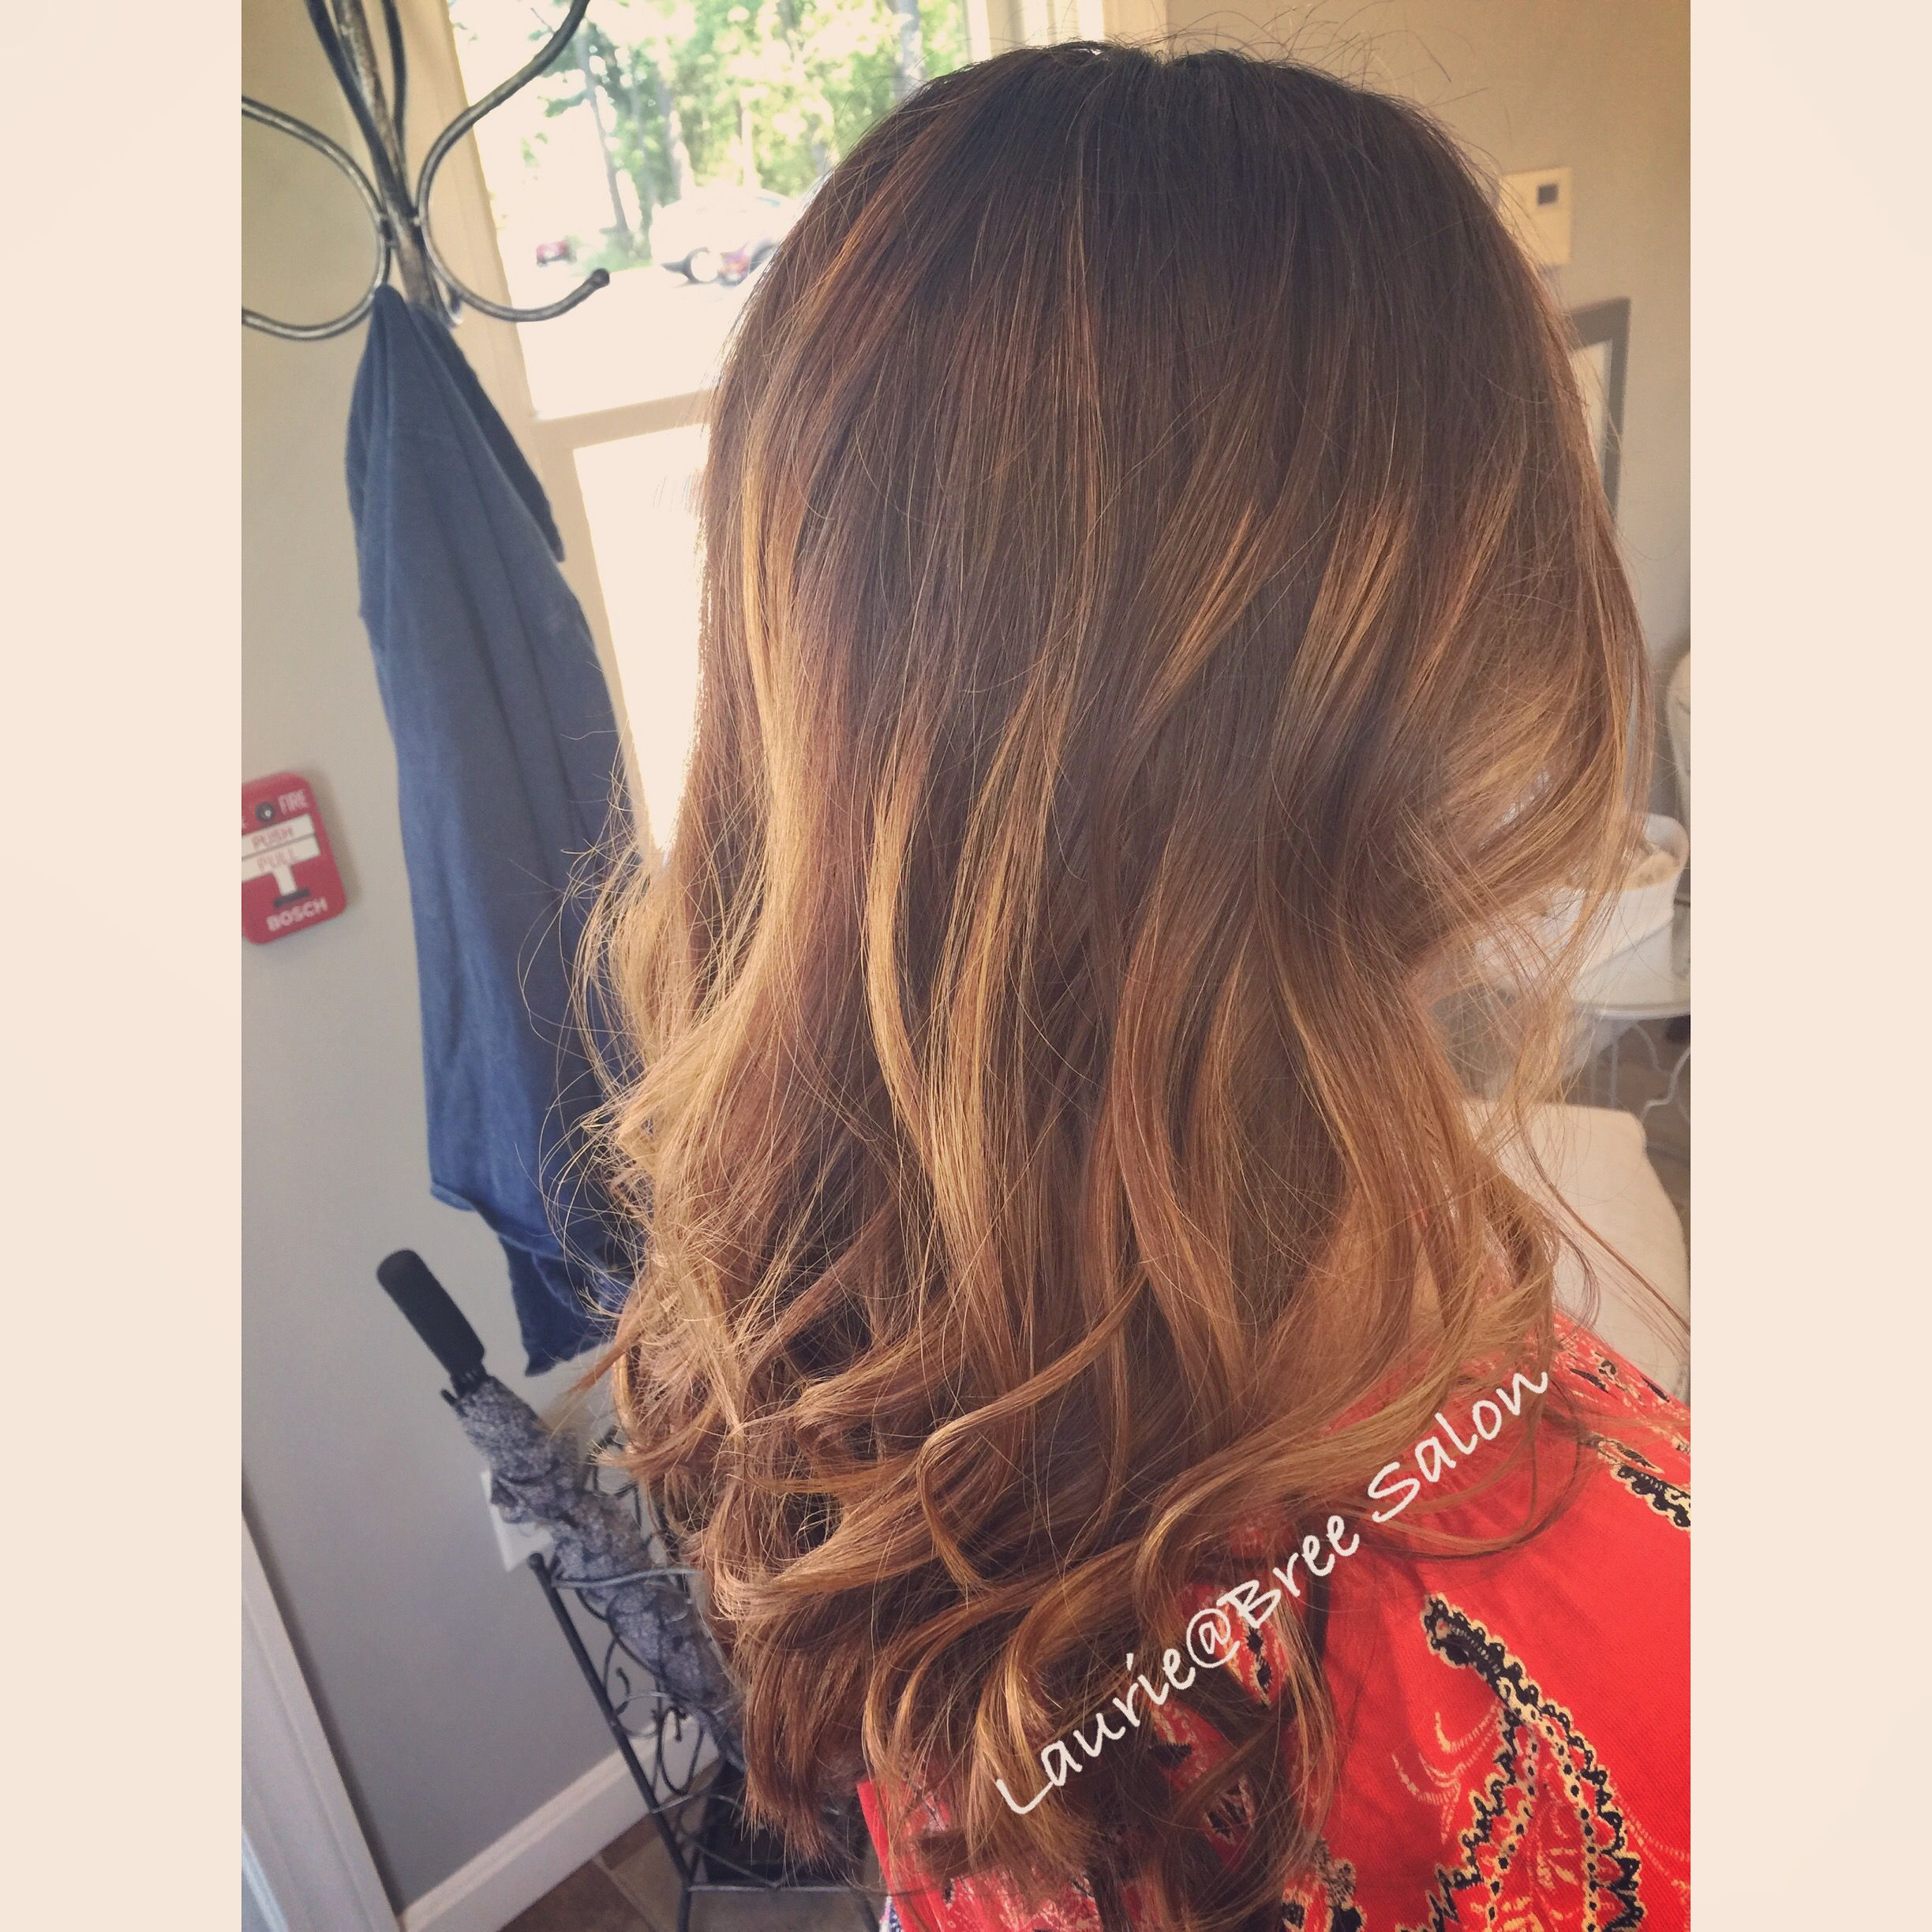 Pin by Laurie SharpMartin on Hair by LAURIEBree Salon Wrentham